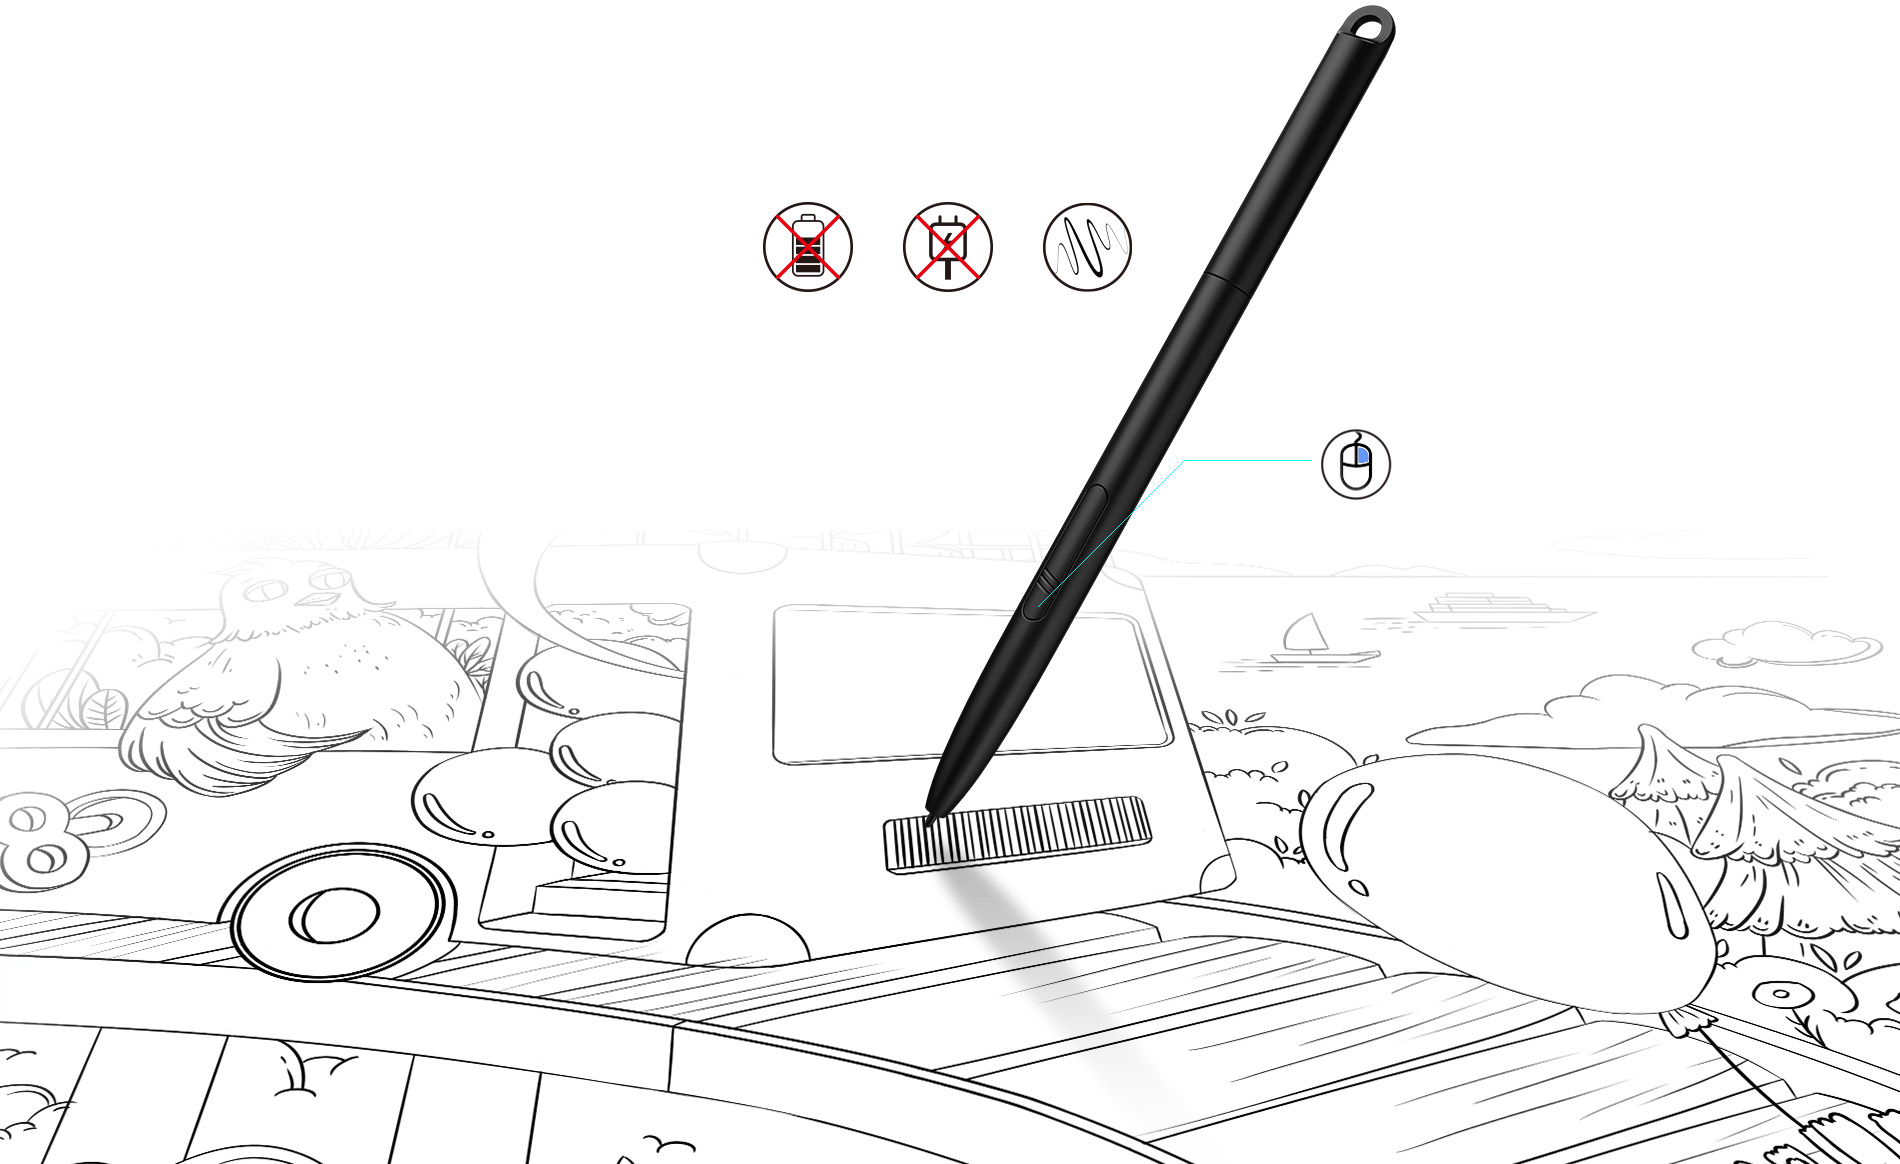 Battery-Free Stylus Pen PH3 does not require charging